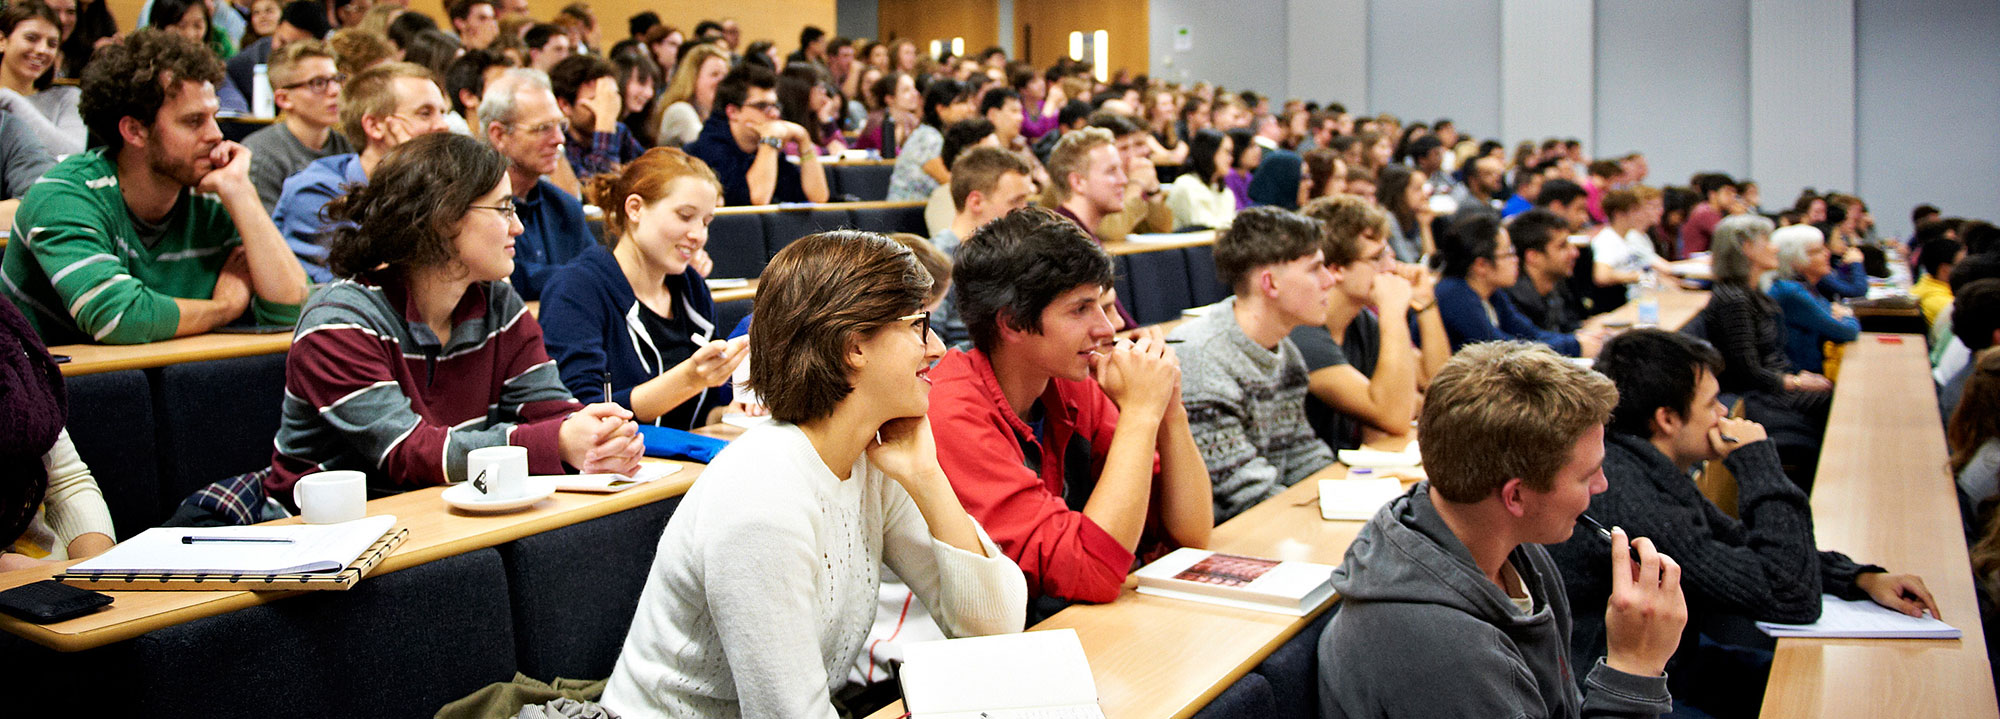 Direct admission, Mbbs in Russia, Government Mbbs College, Mbbs at lowest package, Mbbs in Ukraine, Mbbs in Bangladesh, Mbbs in Malaysia, Mbbs in Germany, Mbbs at low cost, Mbbs in china, Study in abroad, Medical college, Medical university, Study Abroad Consultants, Overseas Education, Consultant Delhi, Study abroad, Top Overseas Education Consultants in New Delhi